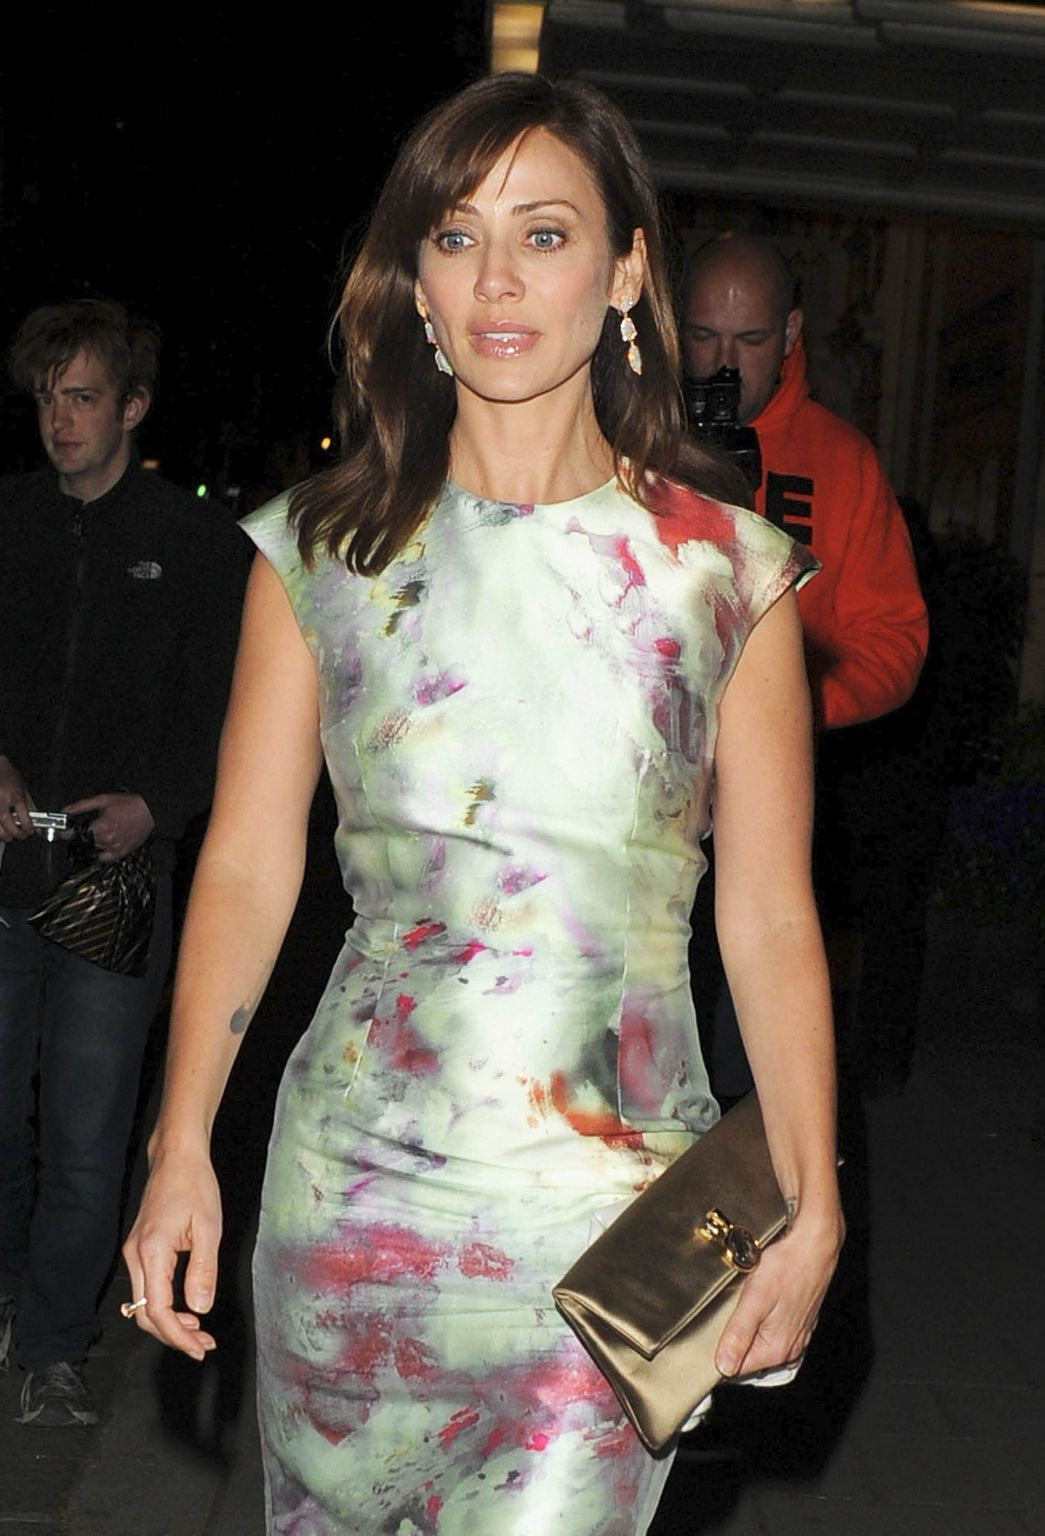 Elizabeth Hurley, Trinny Woodall and Natalie Imbruglia at Quercus Biasi Foundation Spring Gala-1